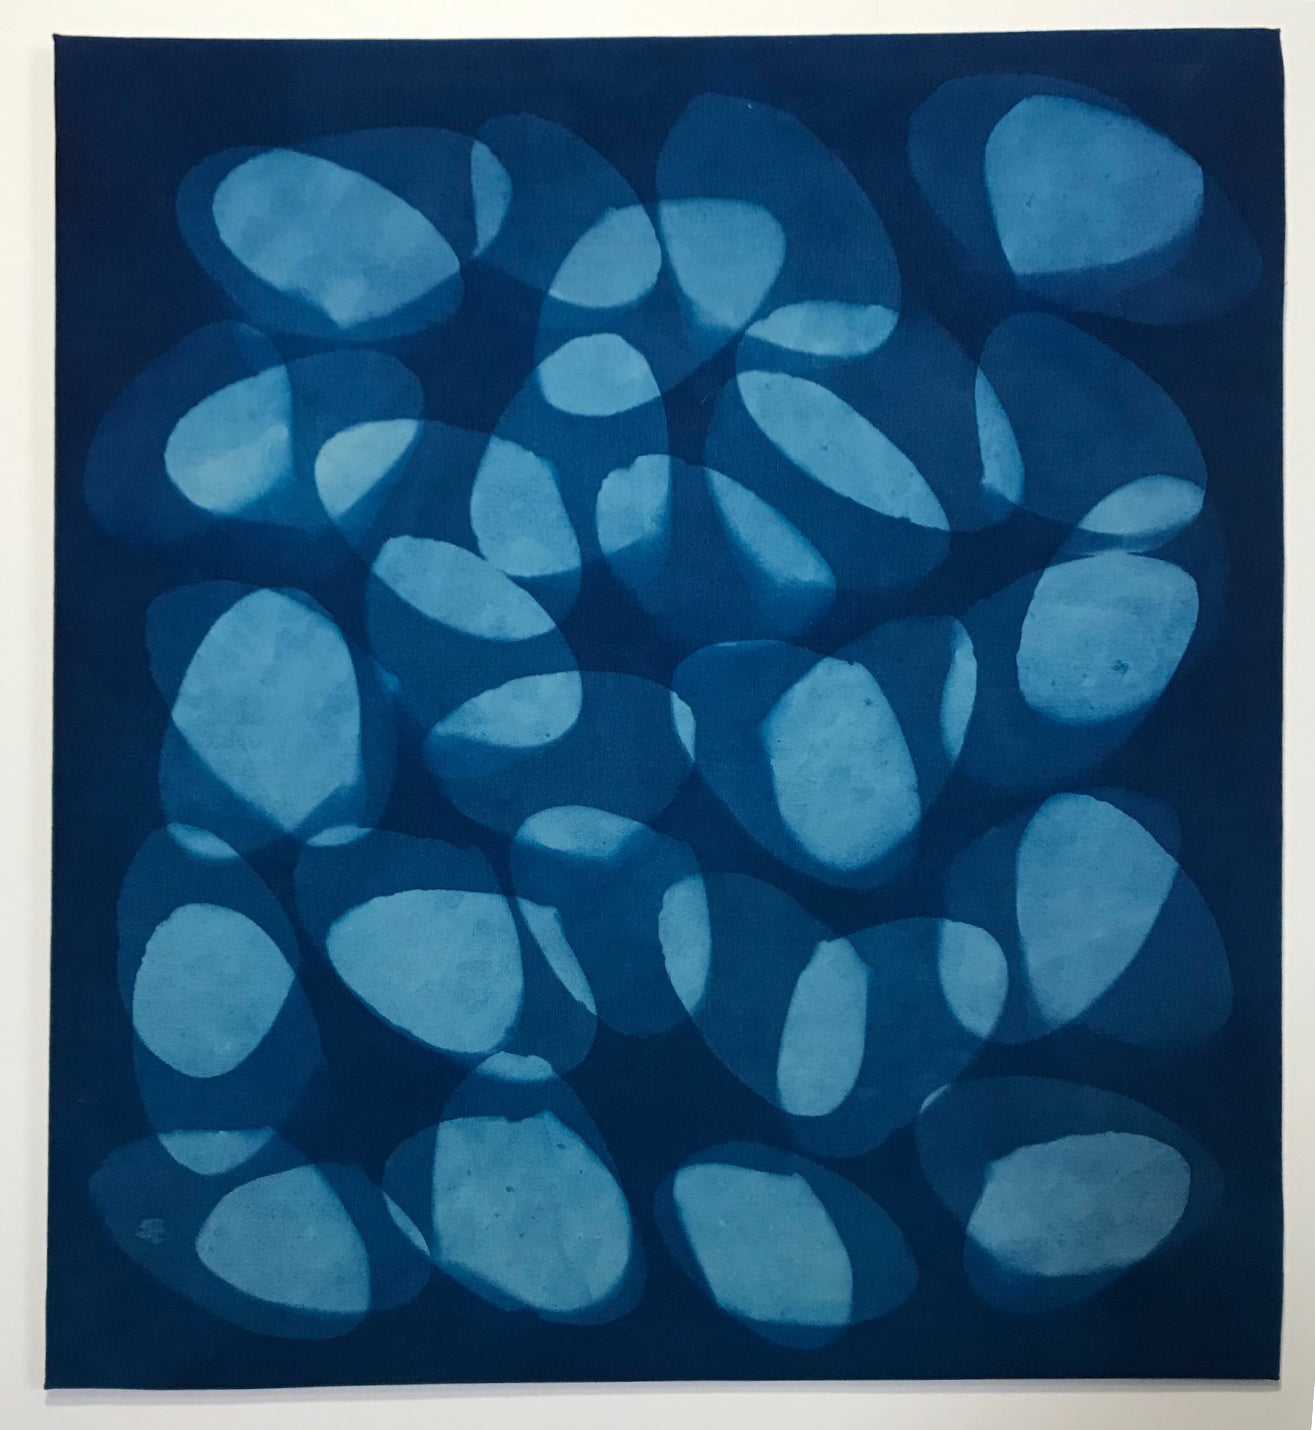 Cyanotype: Sea Clam Series